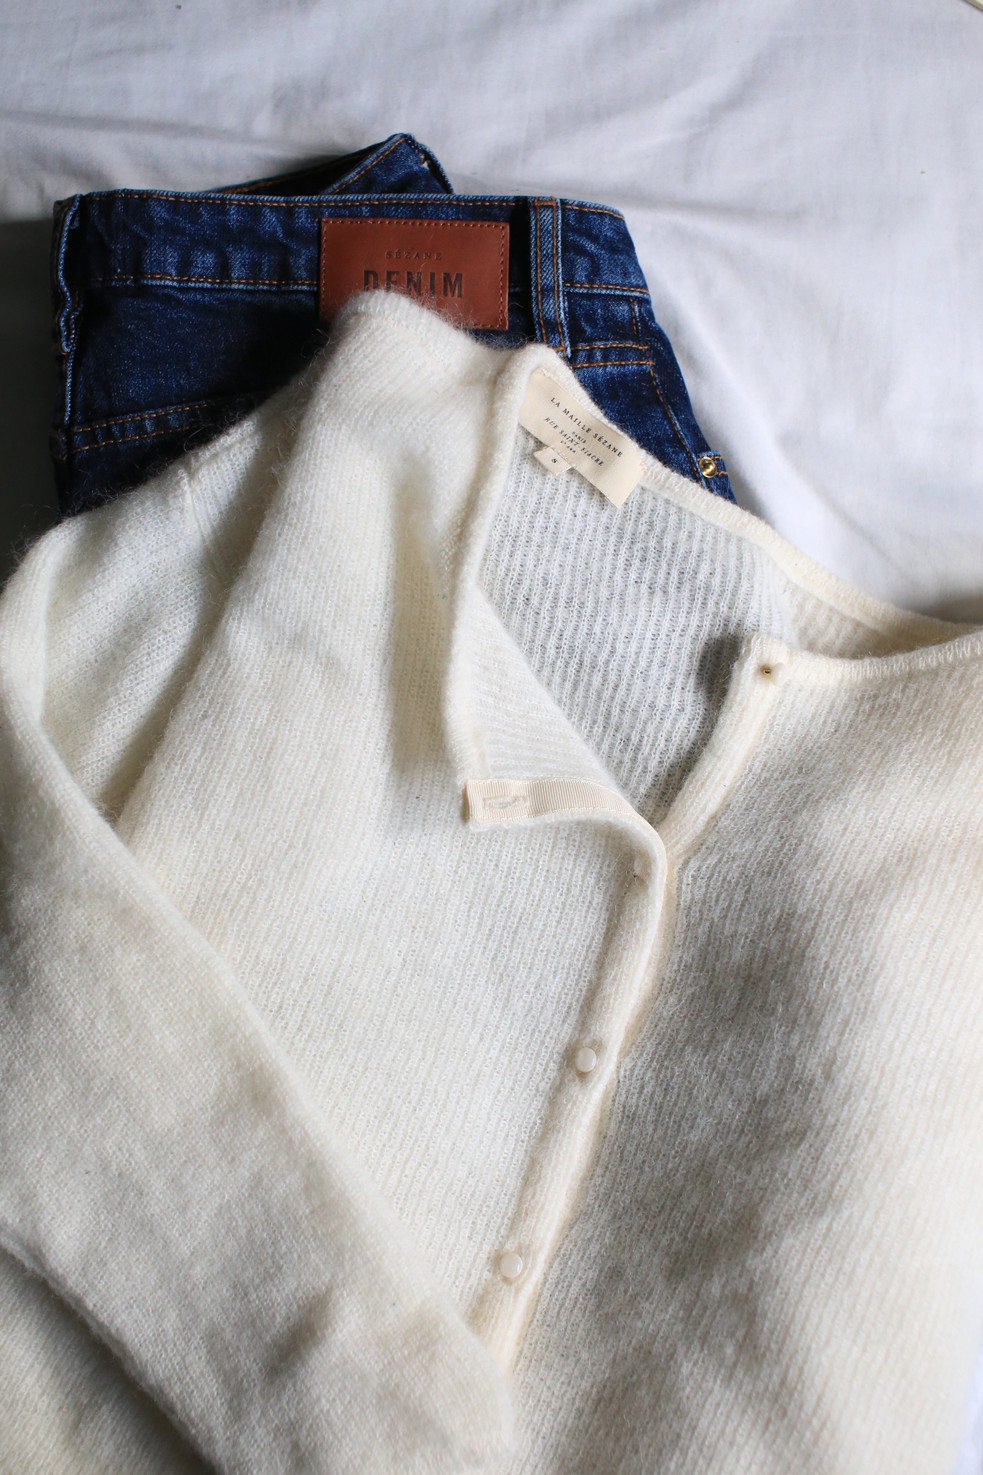 2 apps to start your sustainable wardrobe